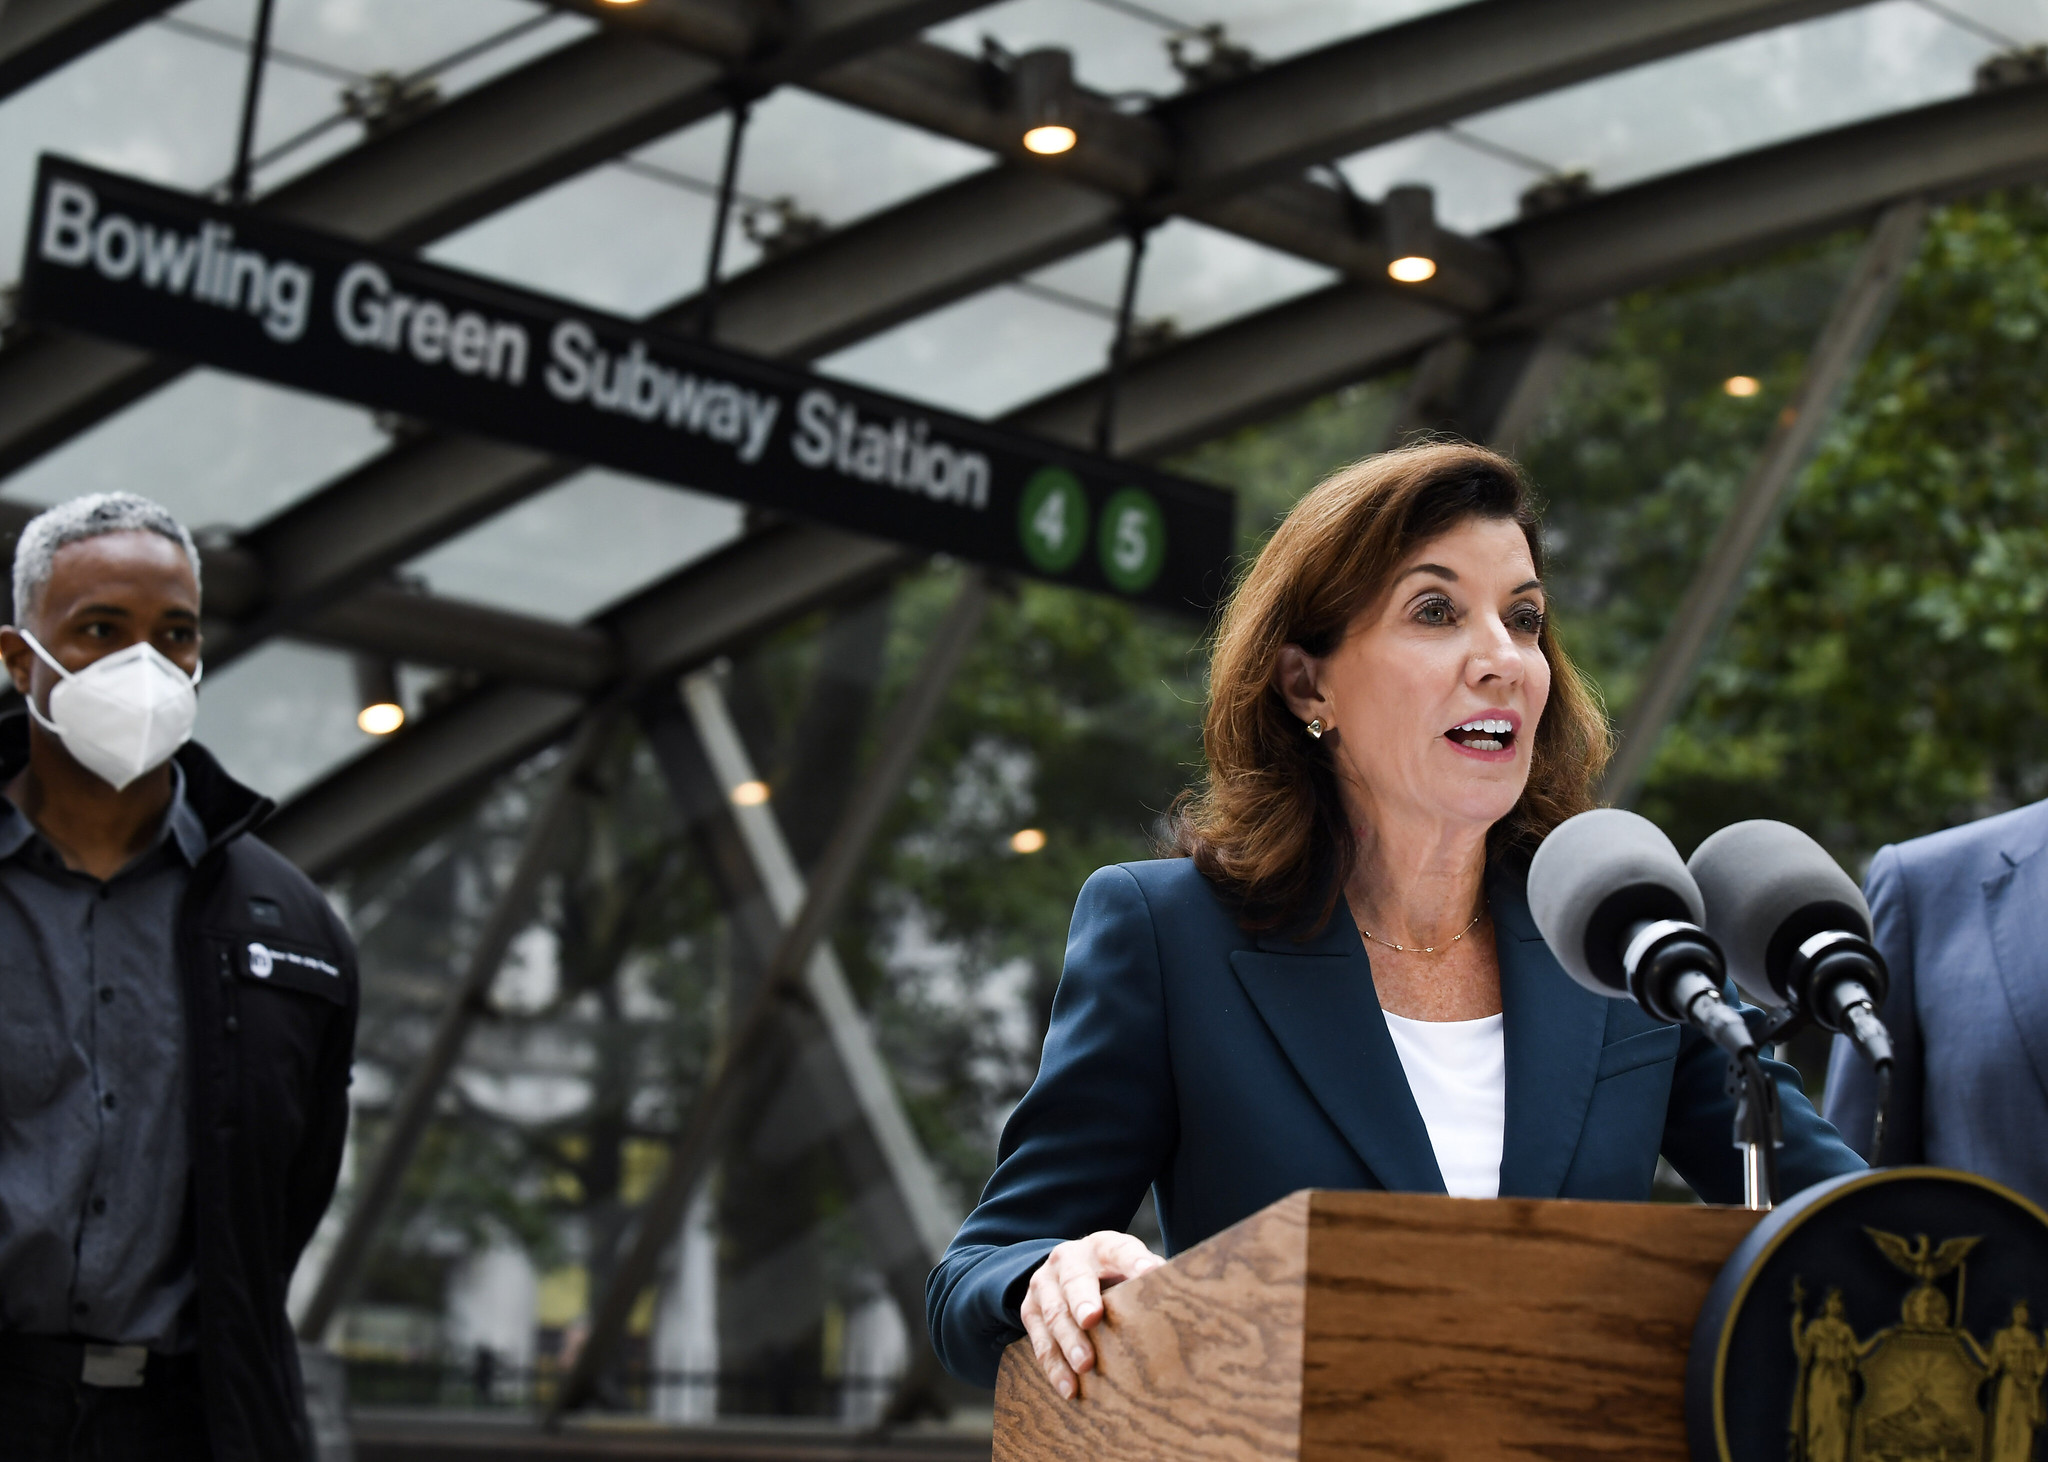 Governor Hochul, in a blue suit and white shirt, stands at a lectern outside the Bowling Greene Subway Station entrance